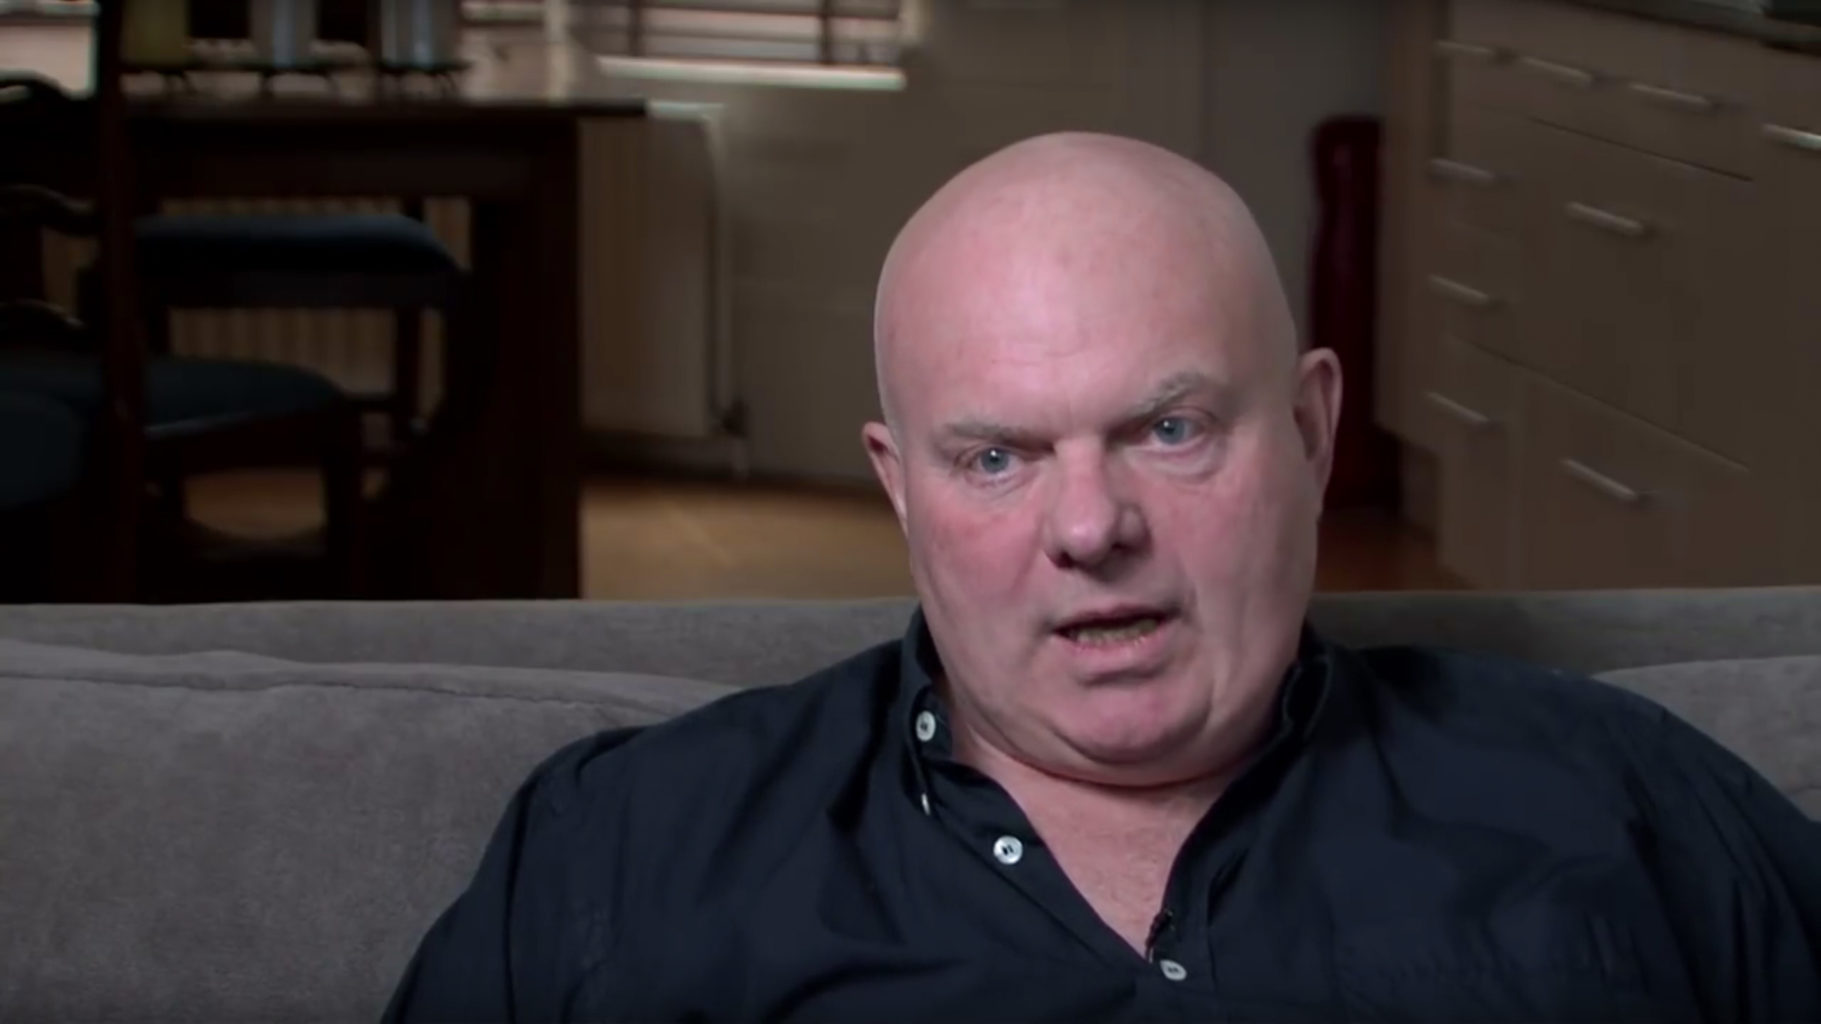 Declan Donnellan discusses Imagination